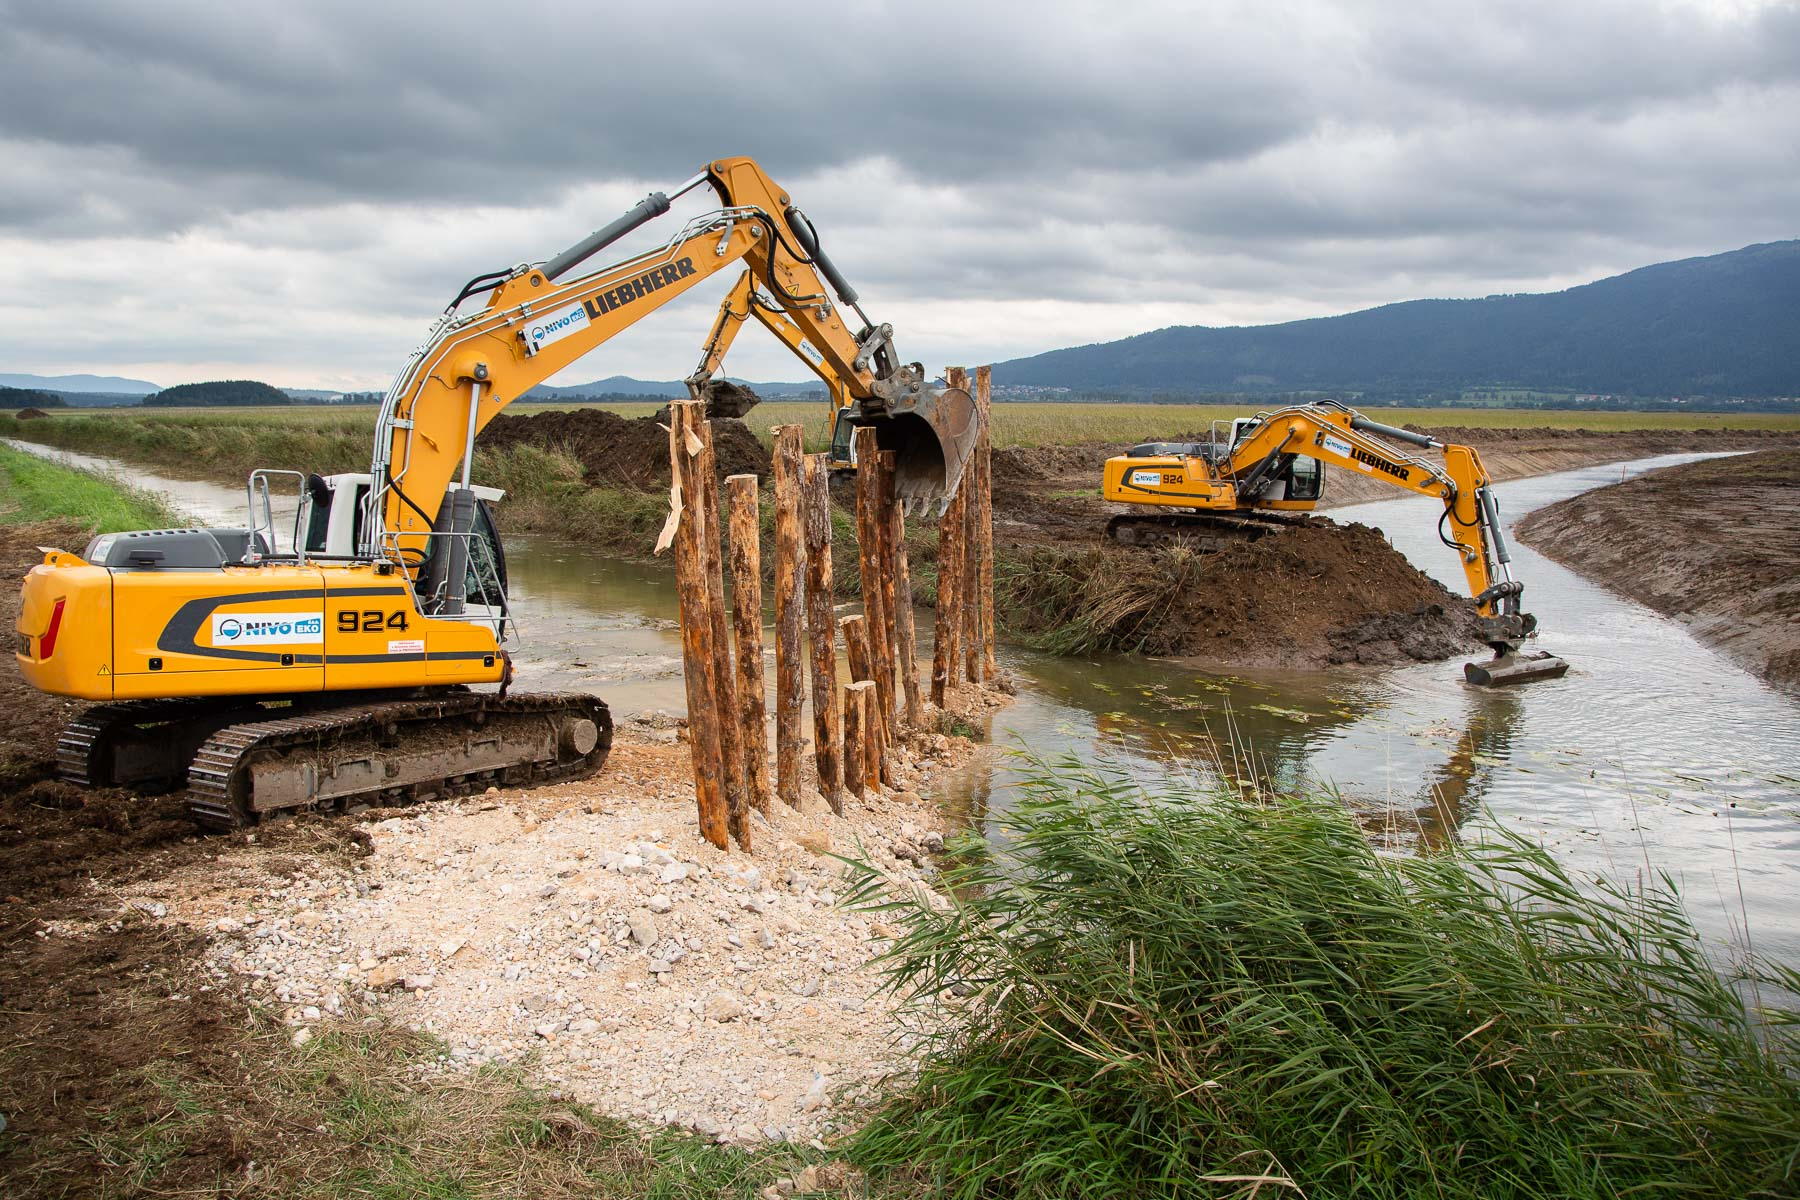 On September 2019 restoration is well underway. On September 6, 2019, the Notranjska Regional Park as part of the Life Stržen project diverted the Stržen stream that fills the lake into its restored meanders. The riverbed of Stržen was straightened 200 years ago to make water flow away faster, thus preventing the field to become a lake. With the stream back in its old menaders and two other minor streams partially restored, the lake is now 80% restored to its state before human intervention 200 years ago.